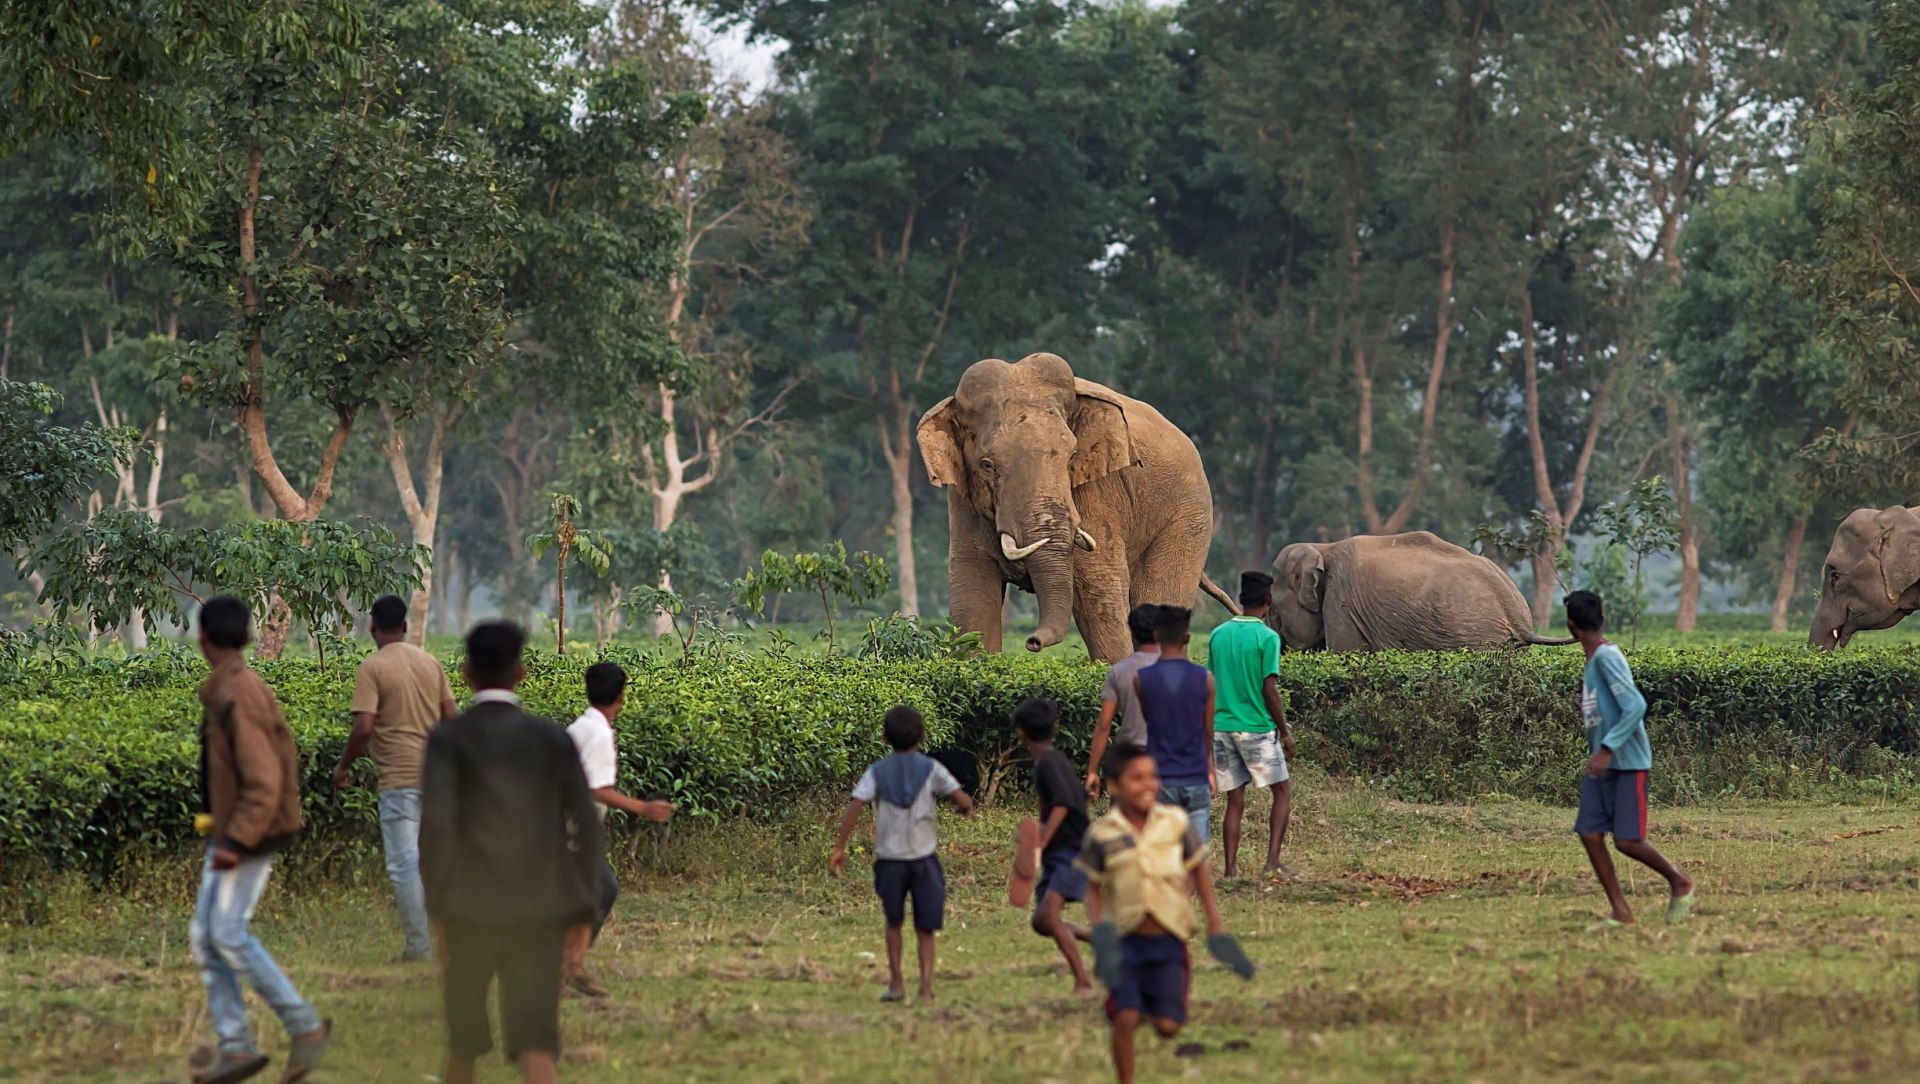 Learning to Coexist with Elephants